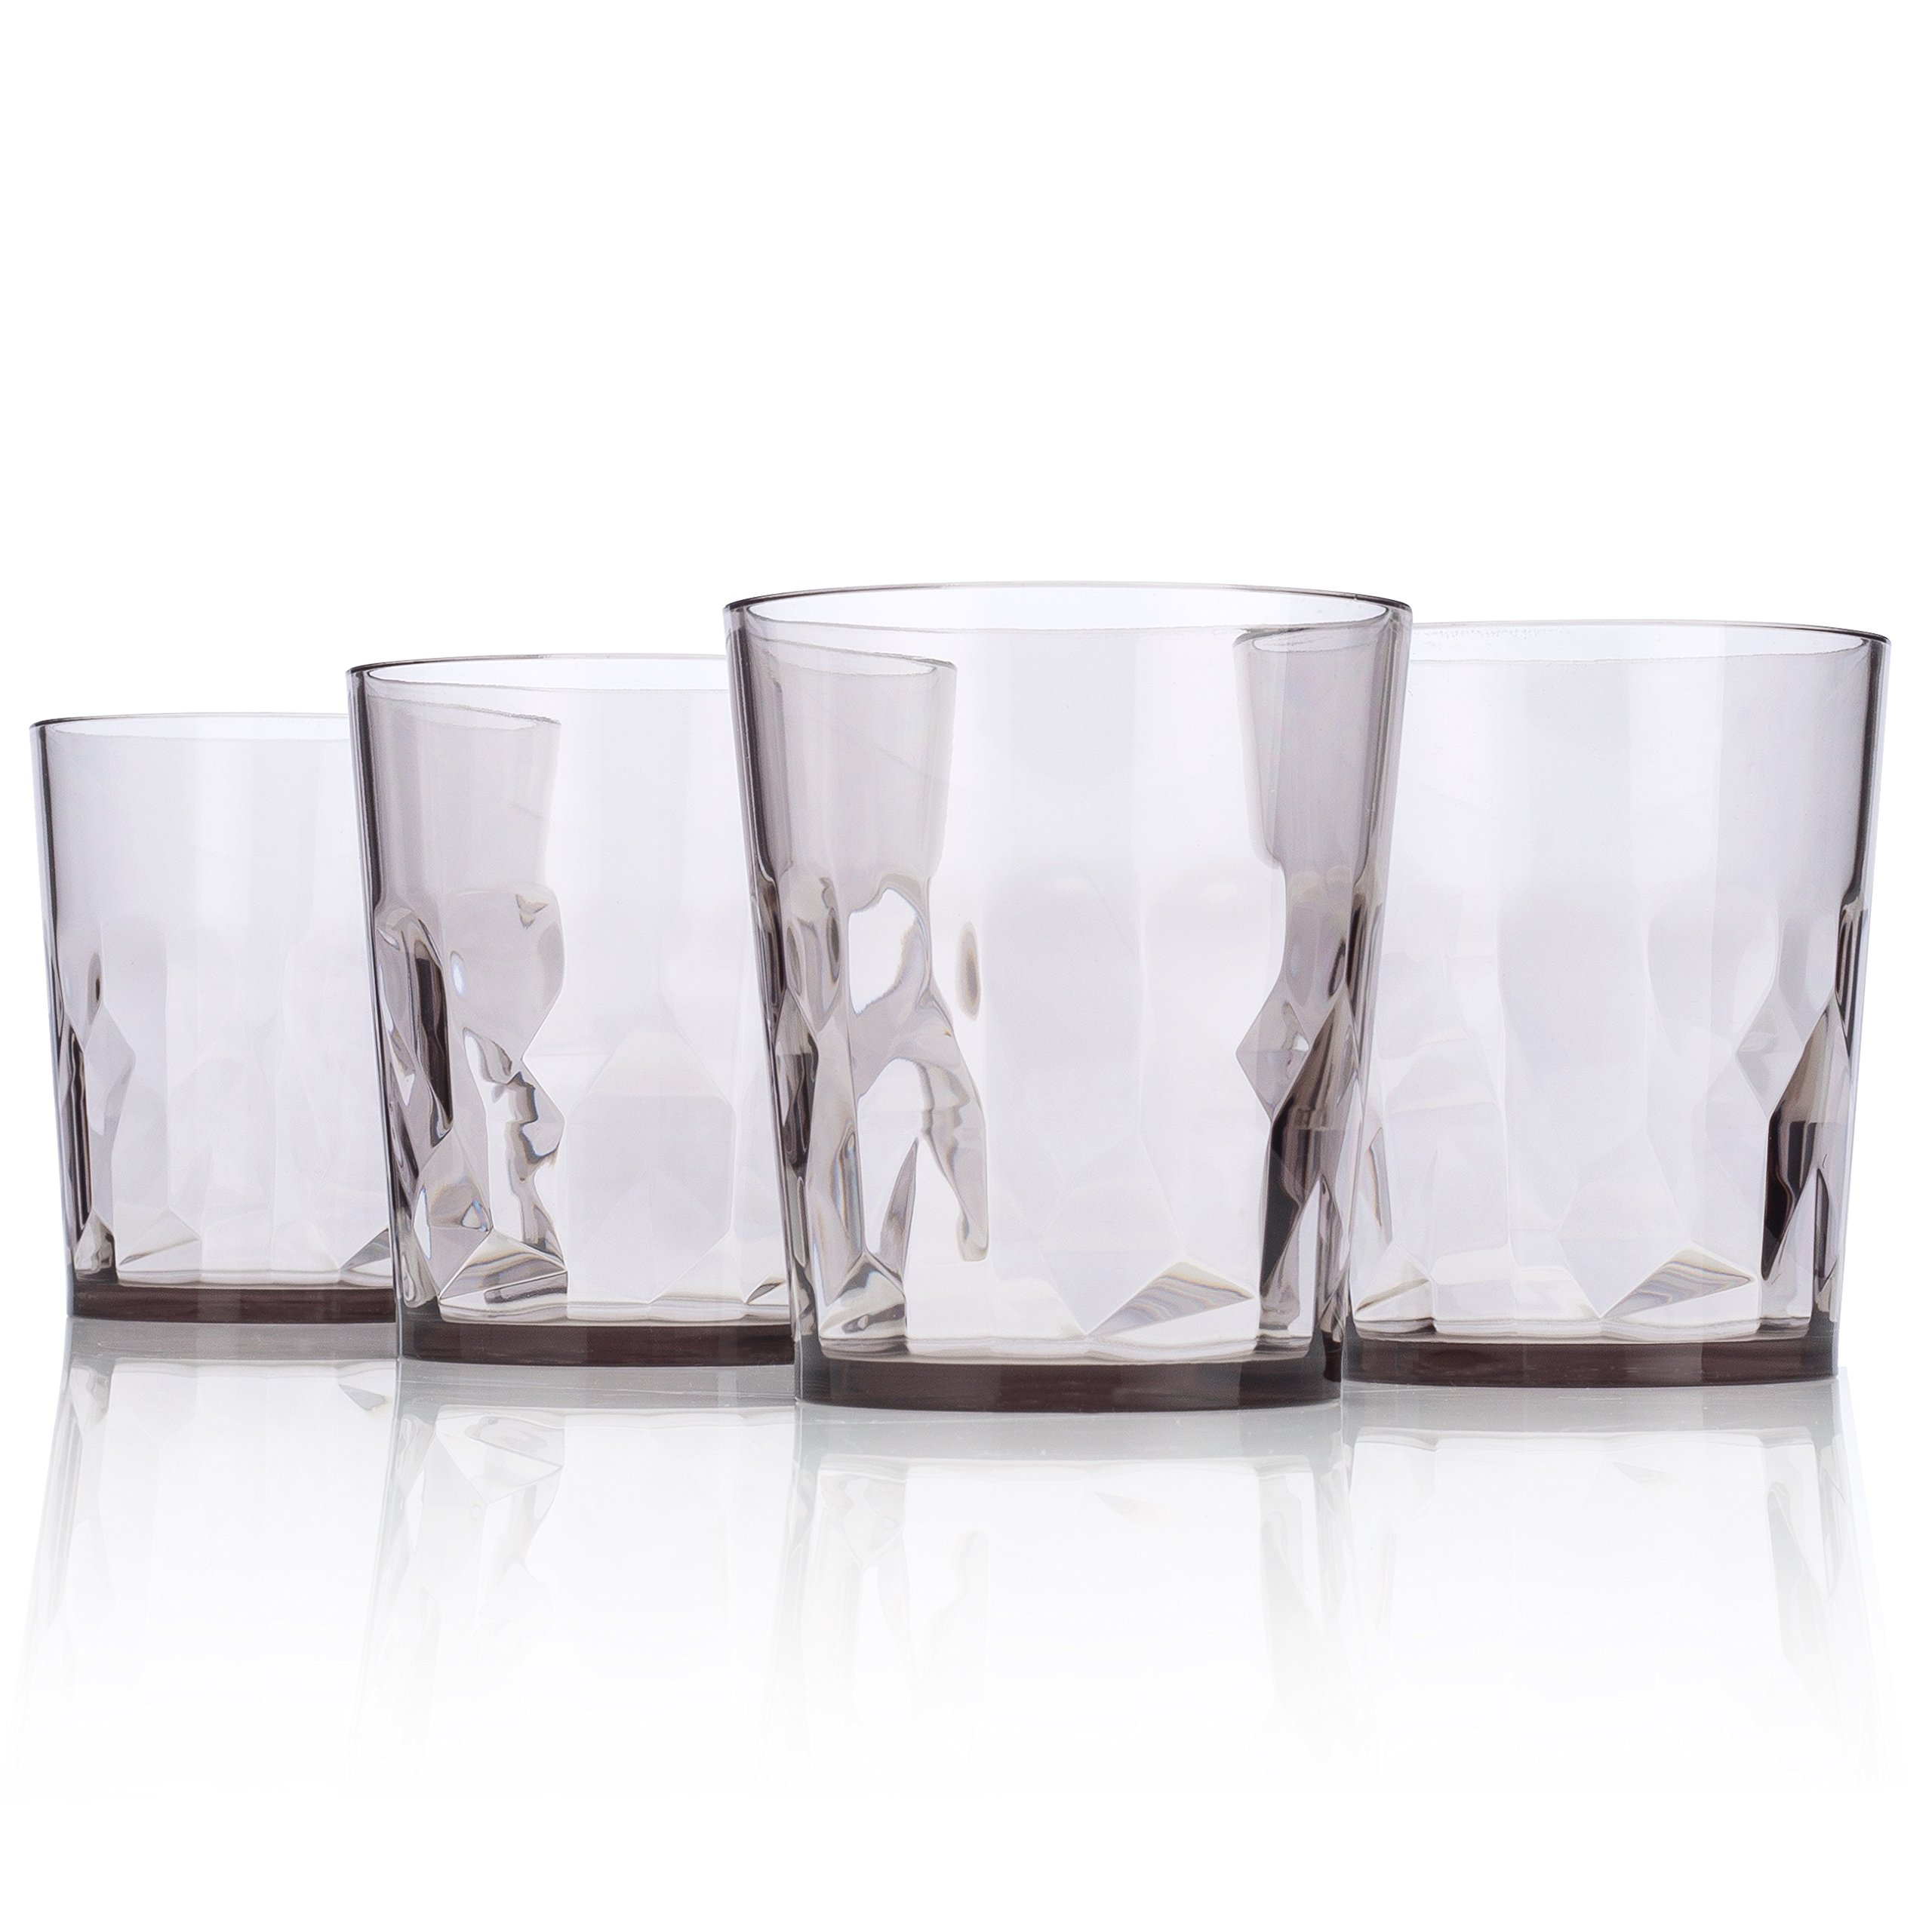 8 oz Premium Juice Glasses - Set of 4 - Unbreakable Tritan Plastic - BPA Free - 100% Made in Japan (Smoky Gray)